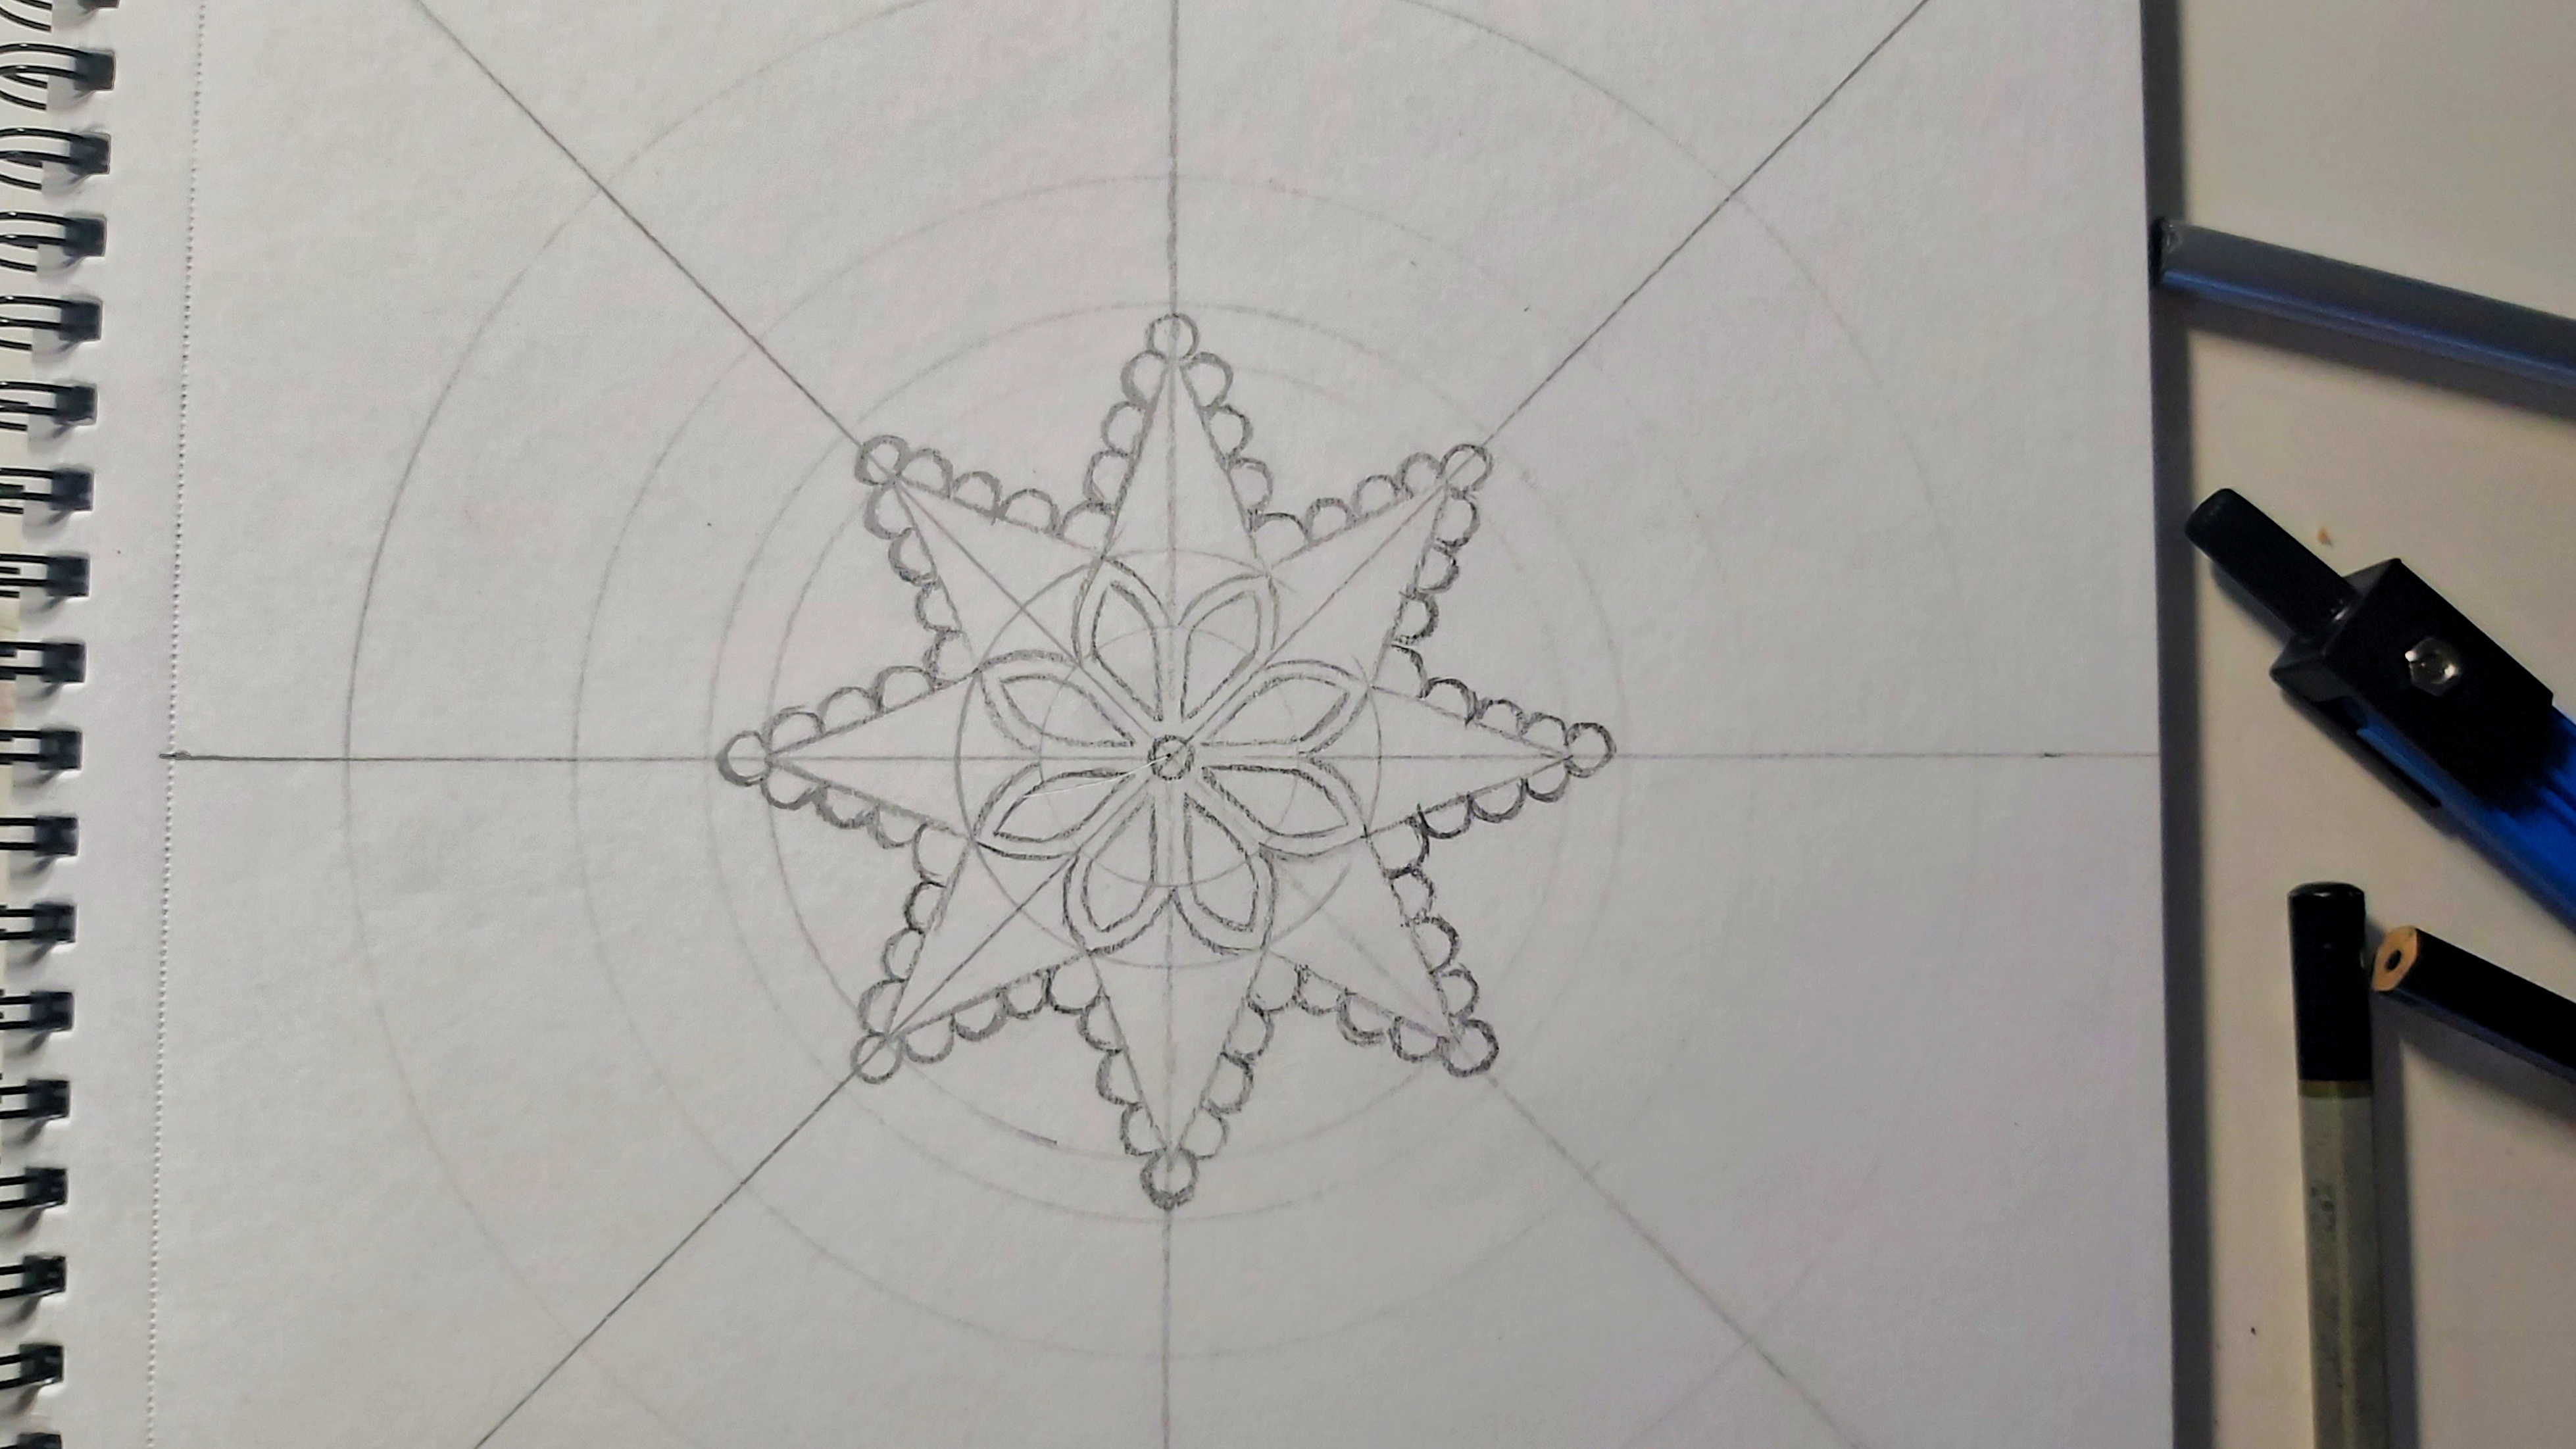 The first two levels in circles, pencil